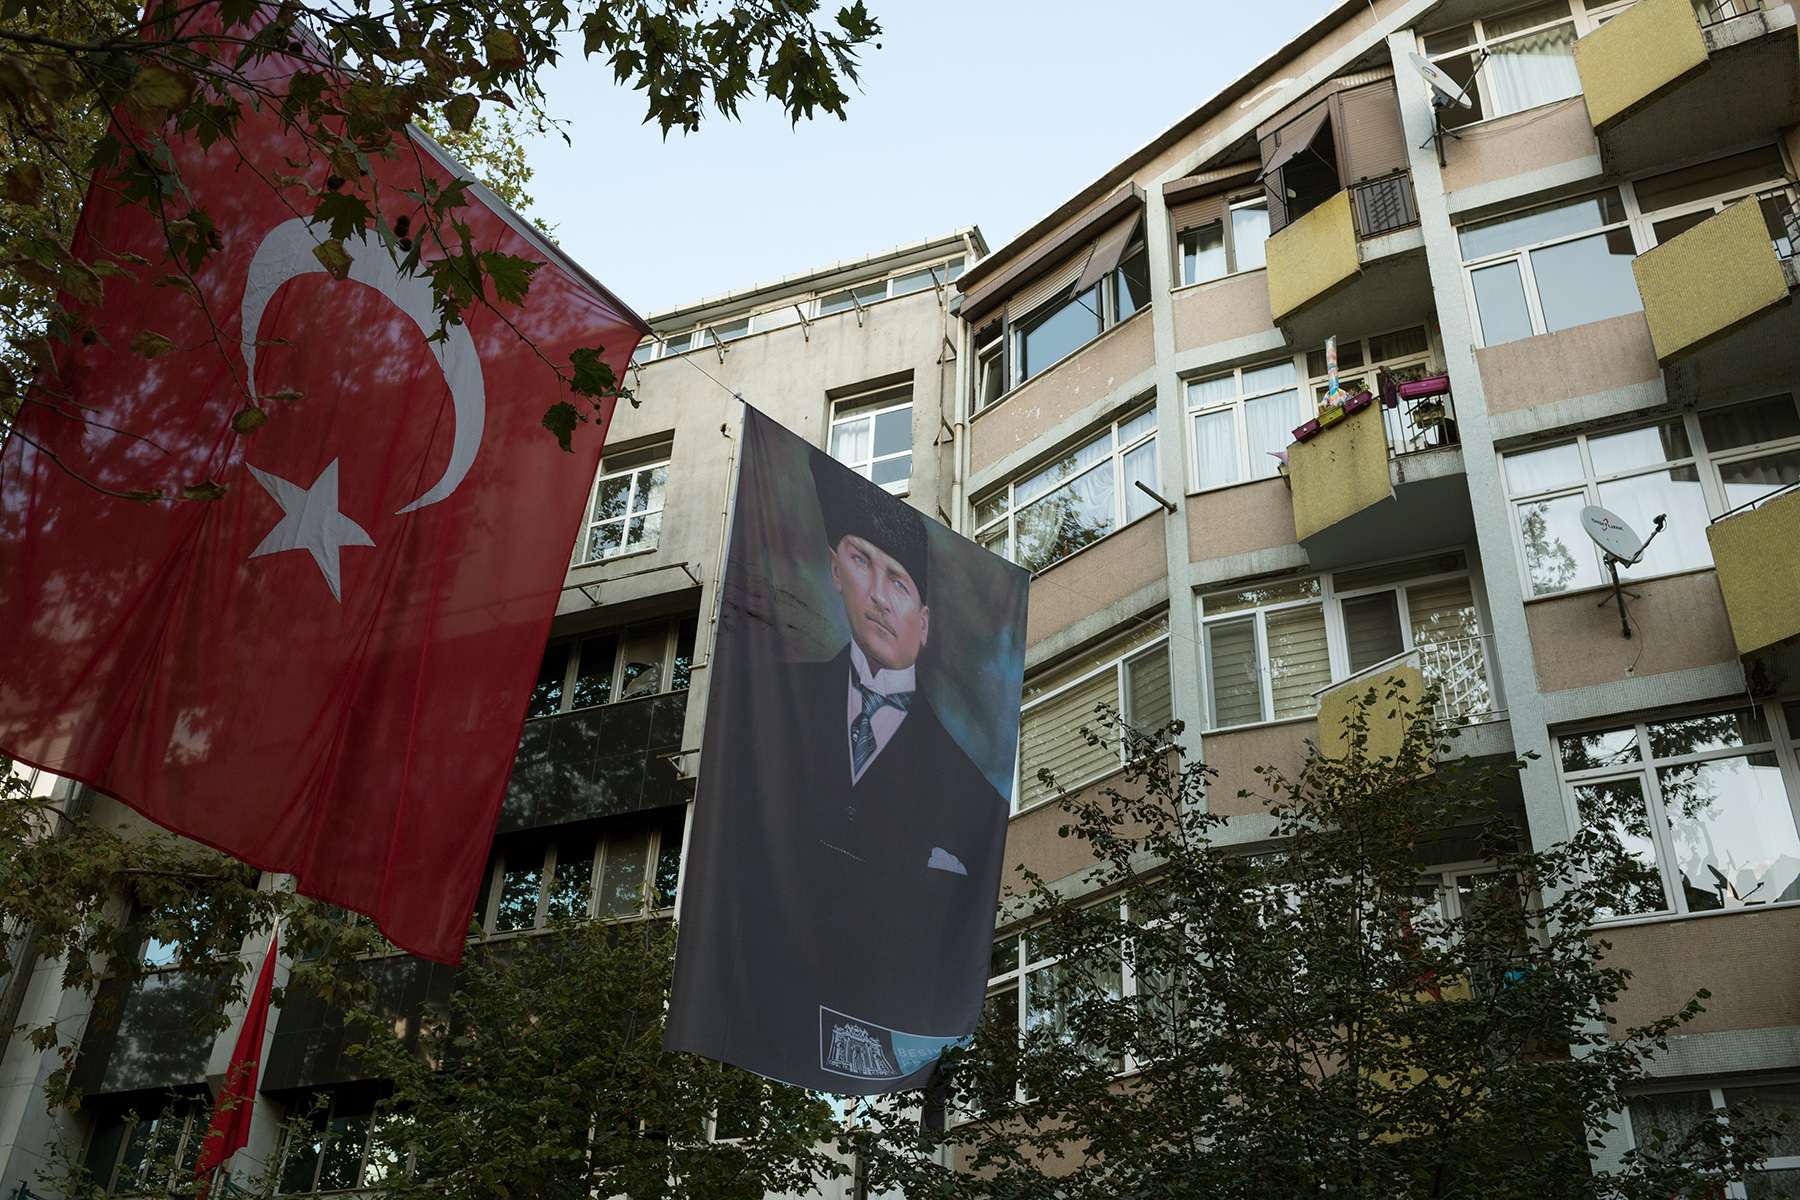 Turkey, October 2017 - Besiktas, a secular district of Istanbul before the festivities for Atatürk's death anniversary.